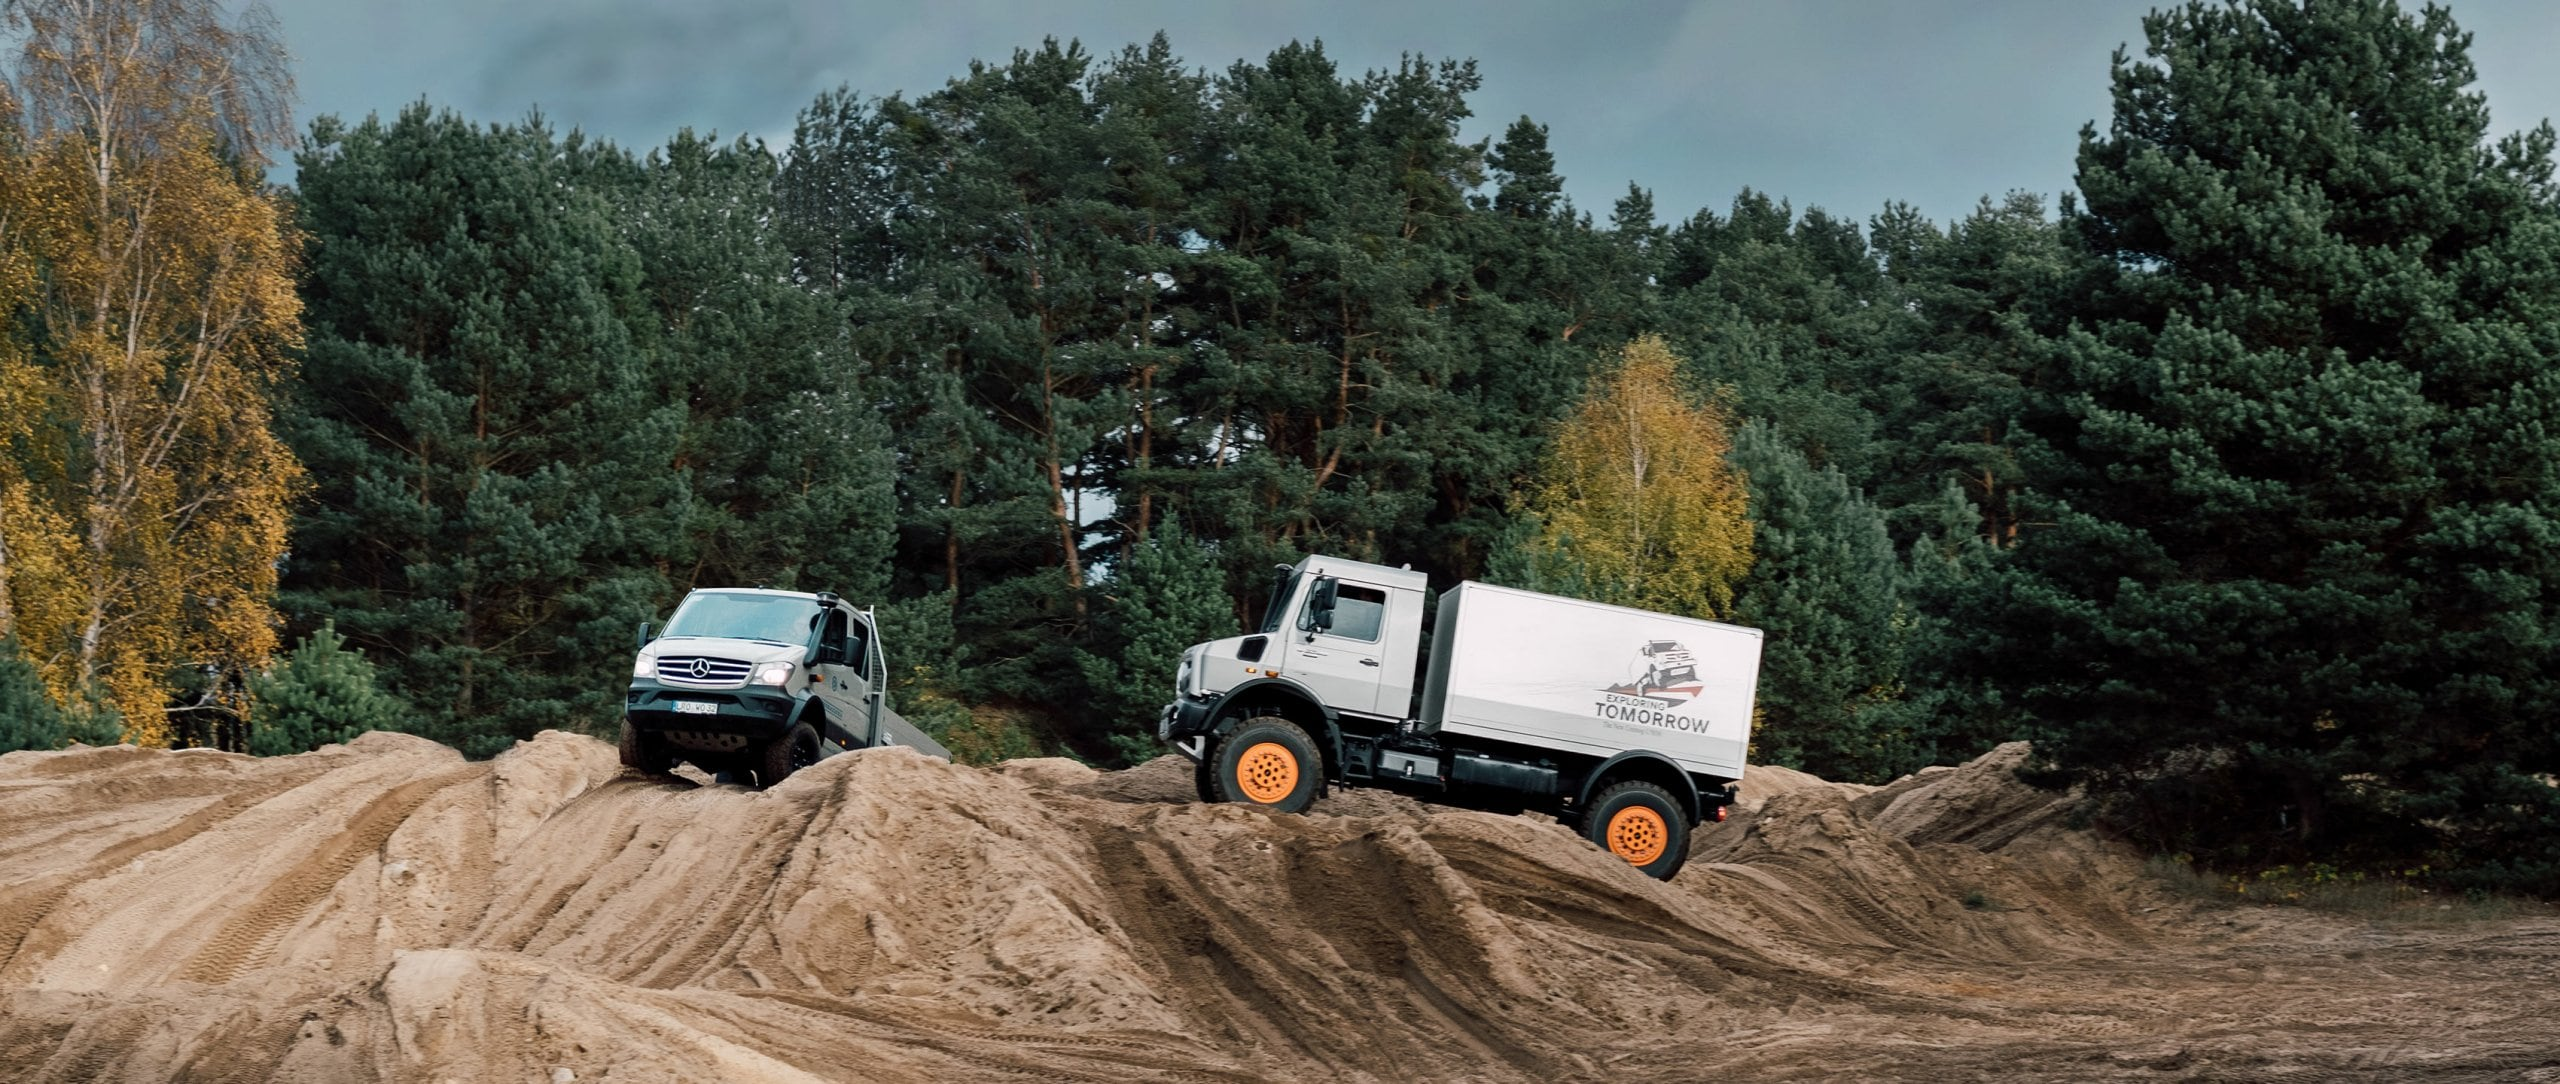 A Mercedes-Benz Sprinter 6x6 and a Unimog drive in off-road terrain over hills.